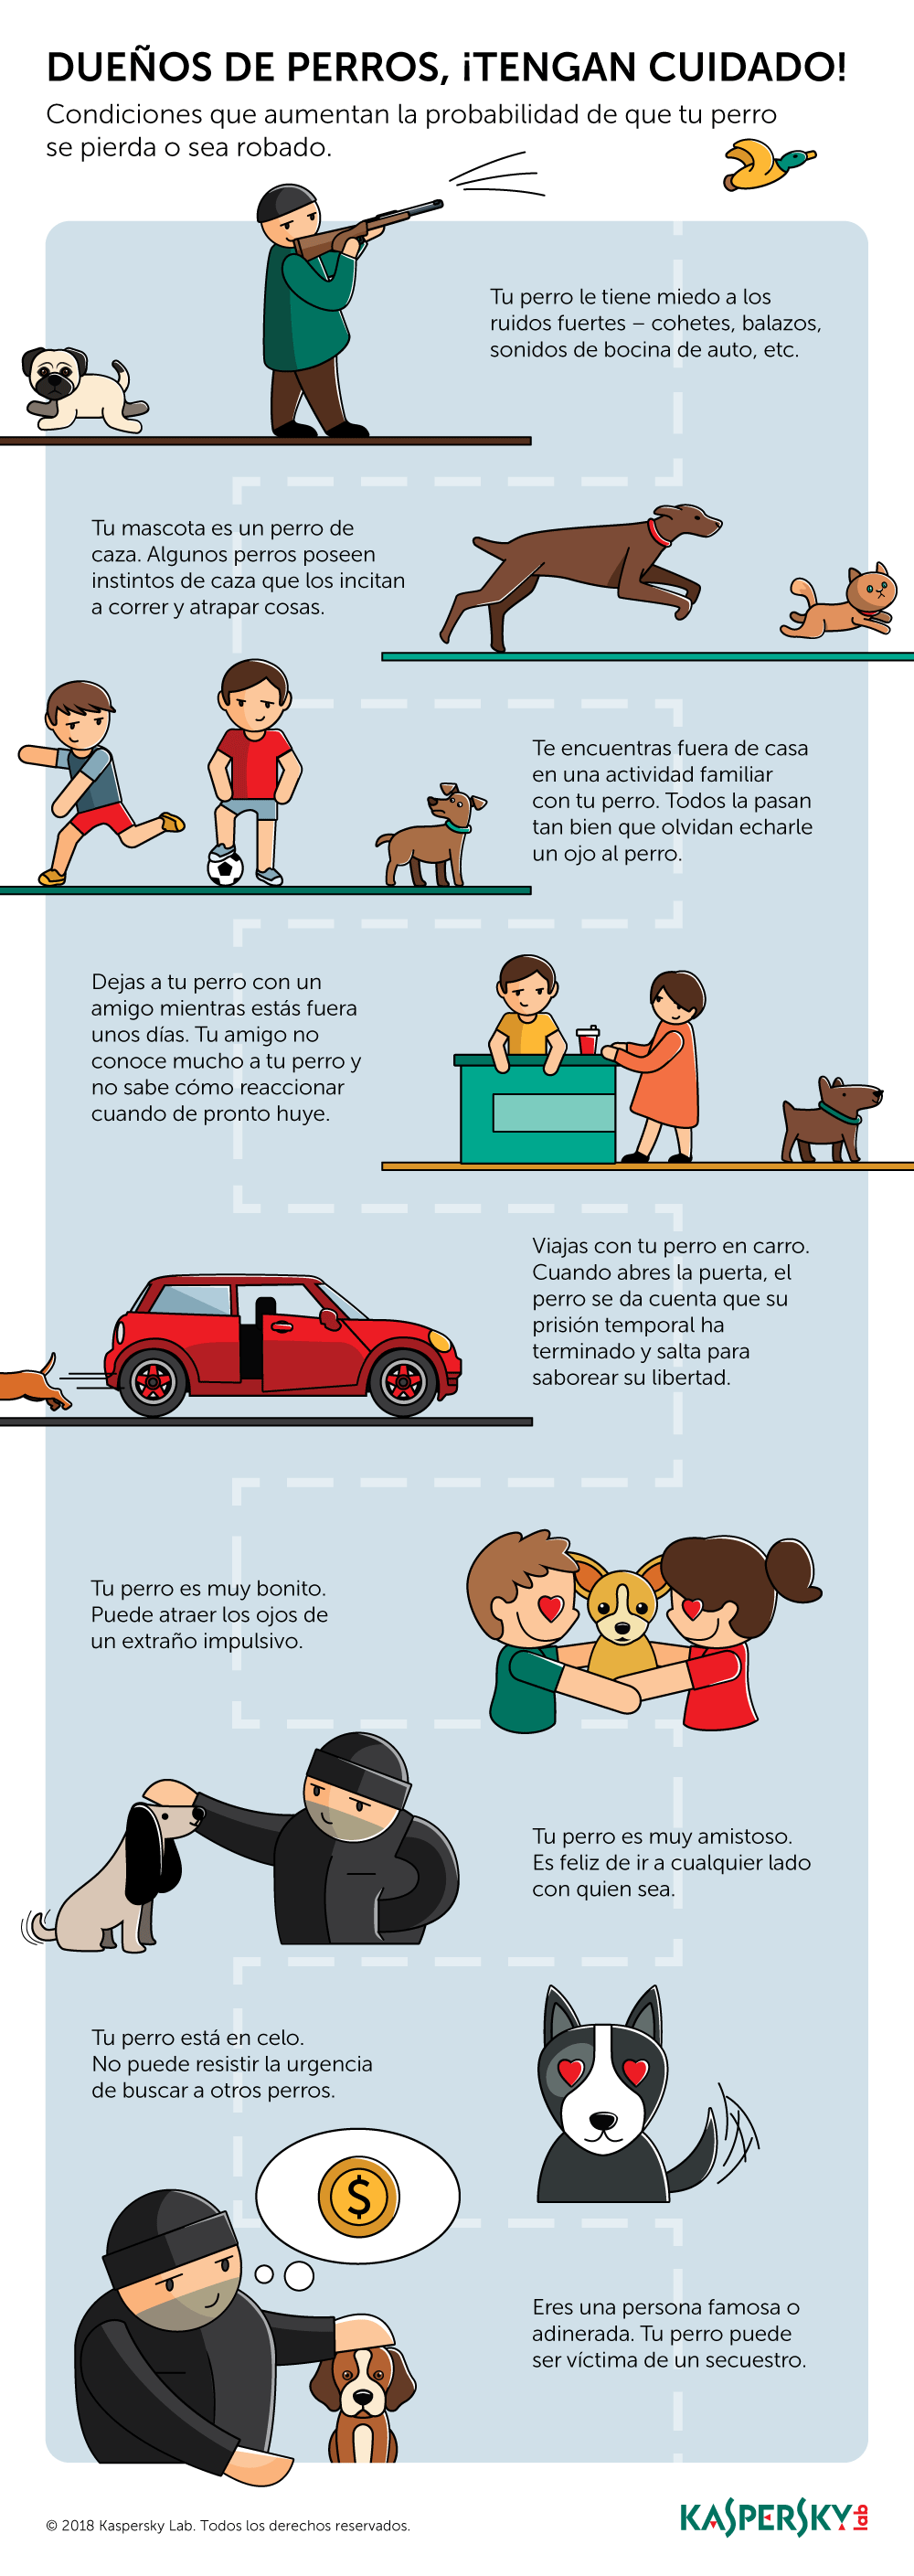 20180605_Doggy_Infographic-SP